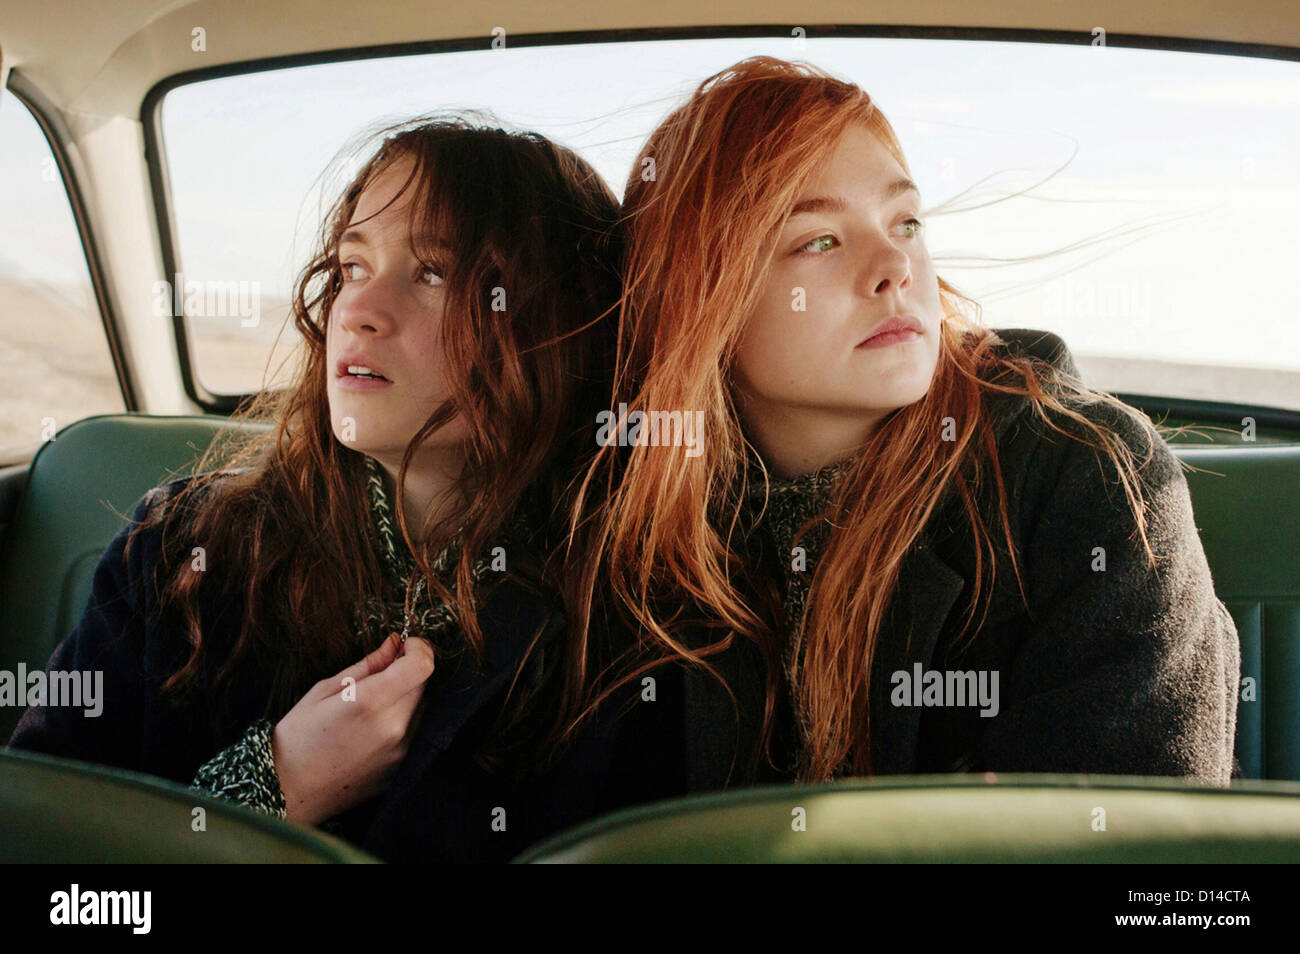 GINGER & ROSA (2012) CHRISTINA HENDRICKS, ELLE FANNING, SALLY POTTER (DIR) 002 MOVIESTORE COLLECTION LTD - Stock Image